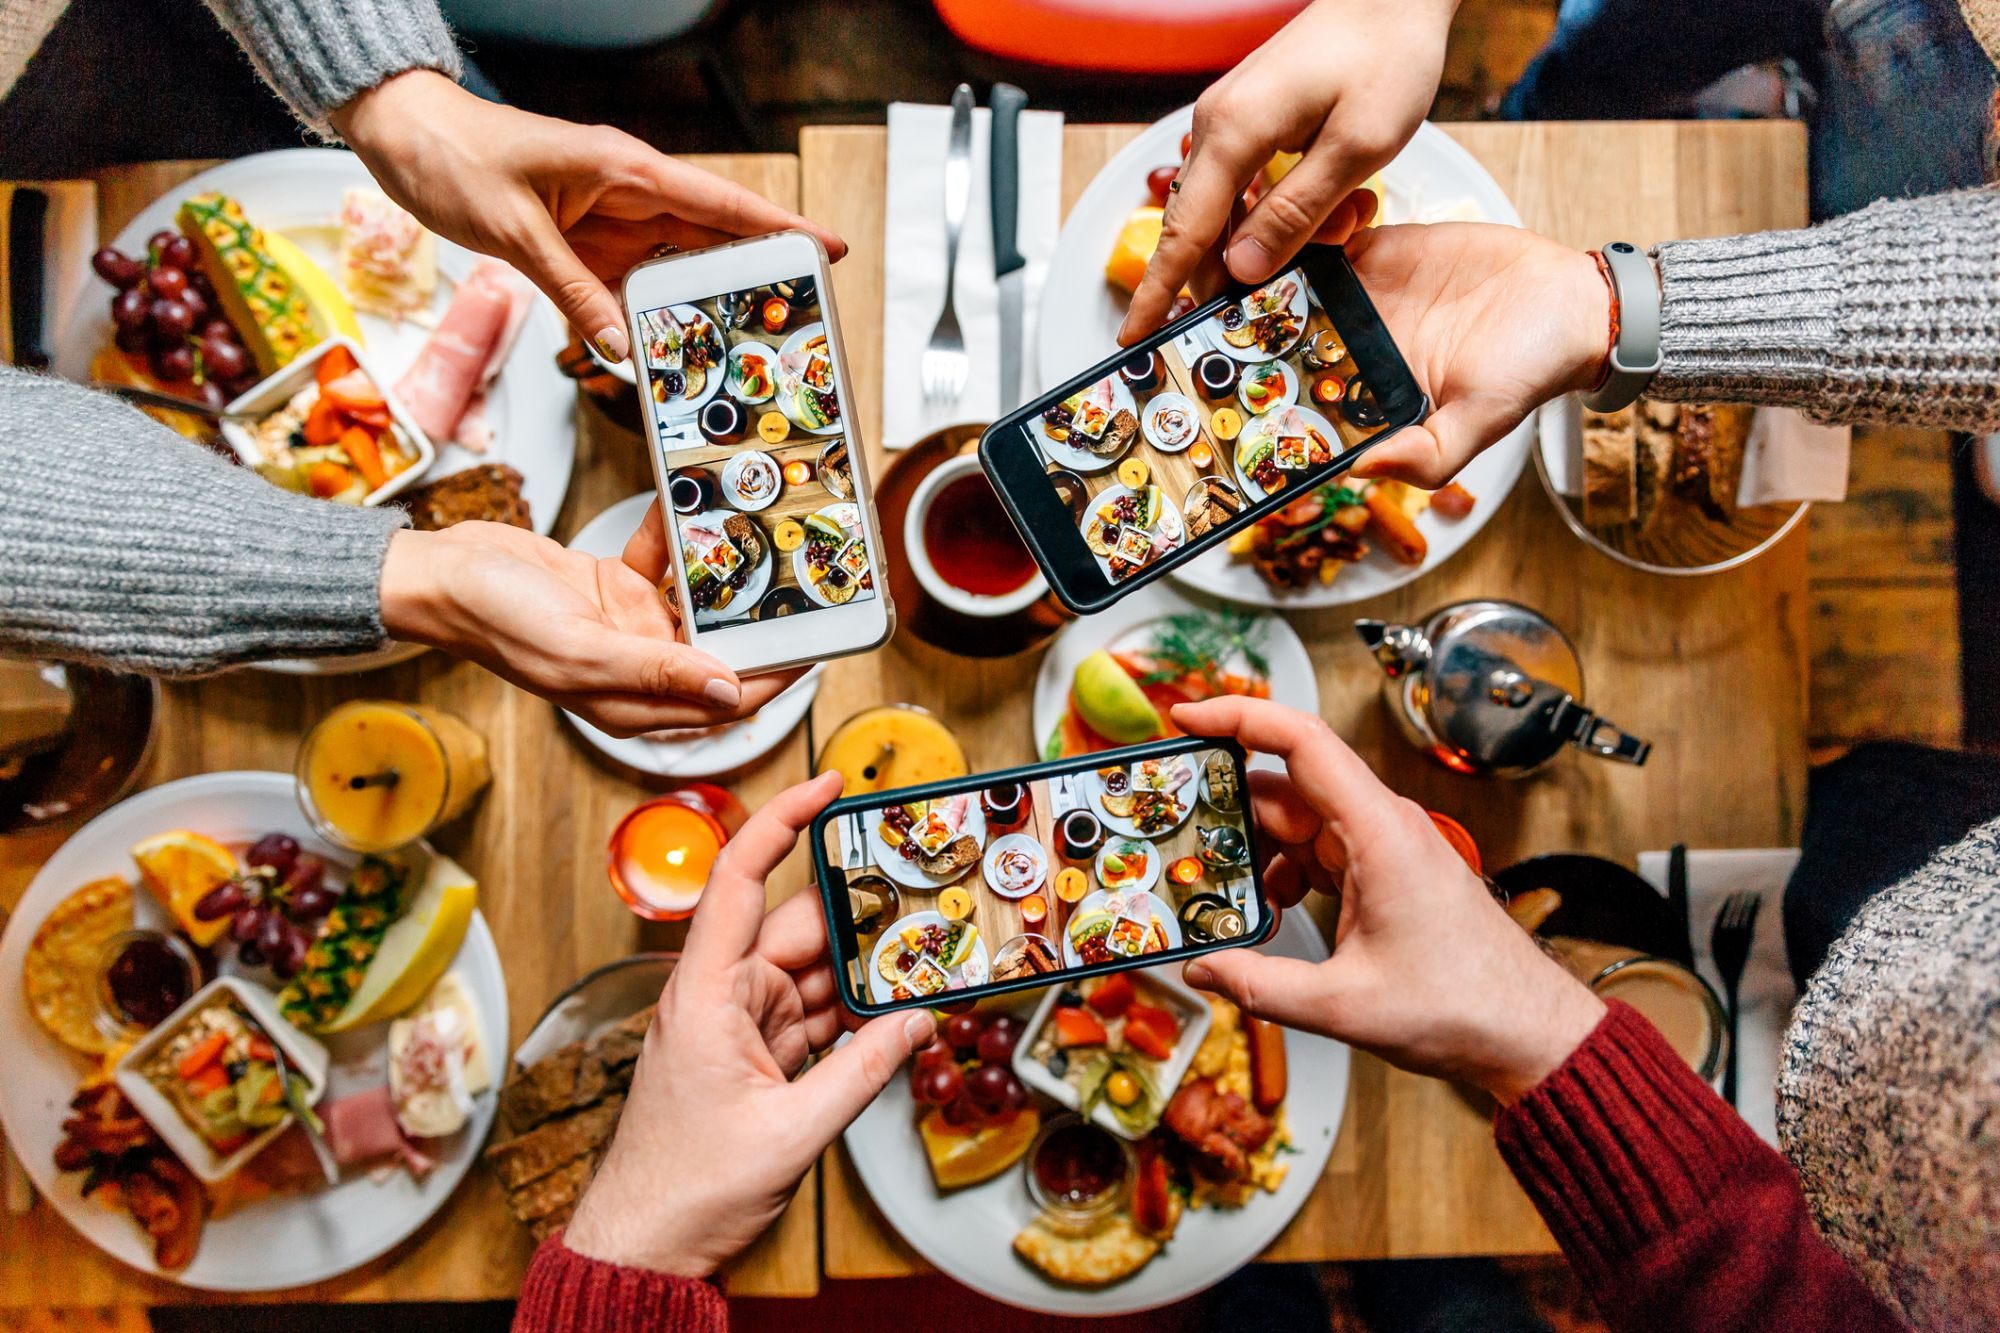 #Tatlerapproved: Food Captions And Quotes For Instagram In 2020